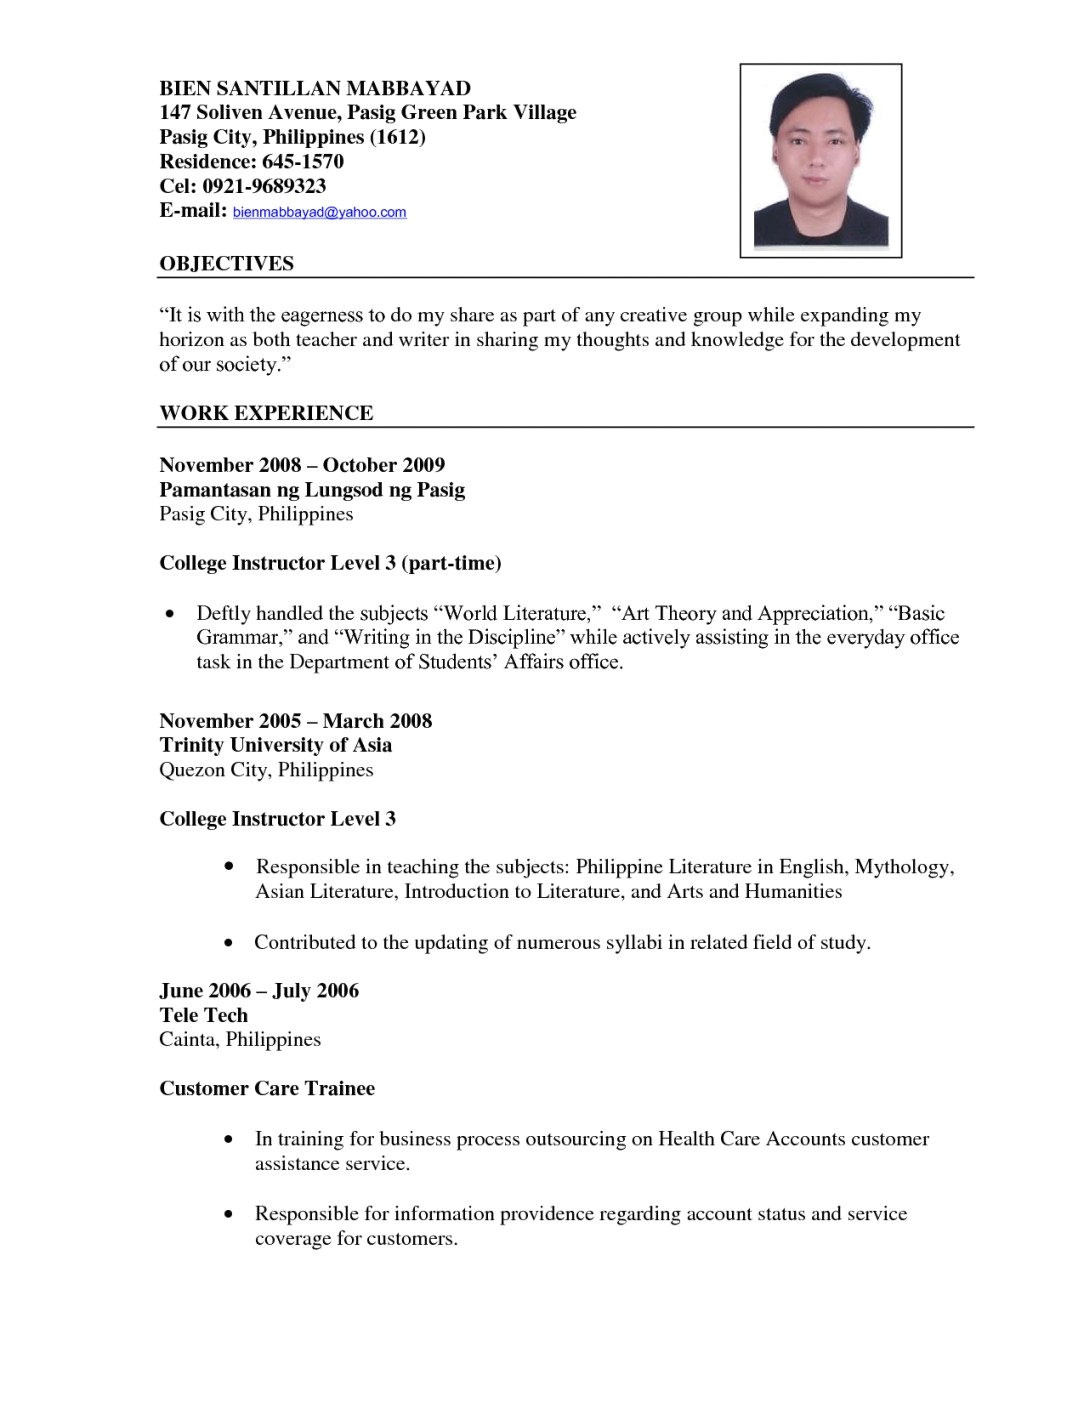 Sample Resume Of Teacher Applicant Sample Of Resume for Teacher Applicant Kc Garza